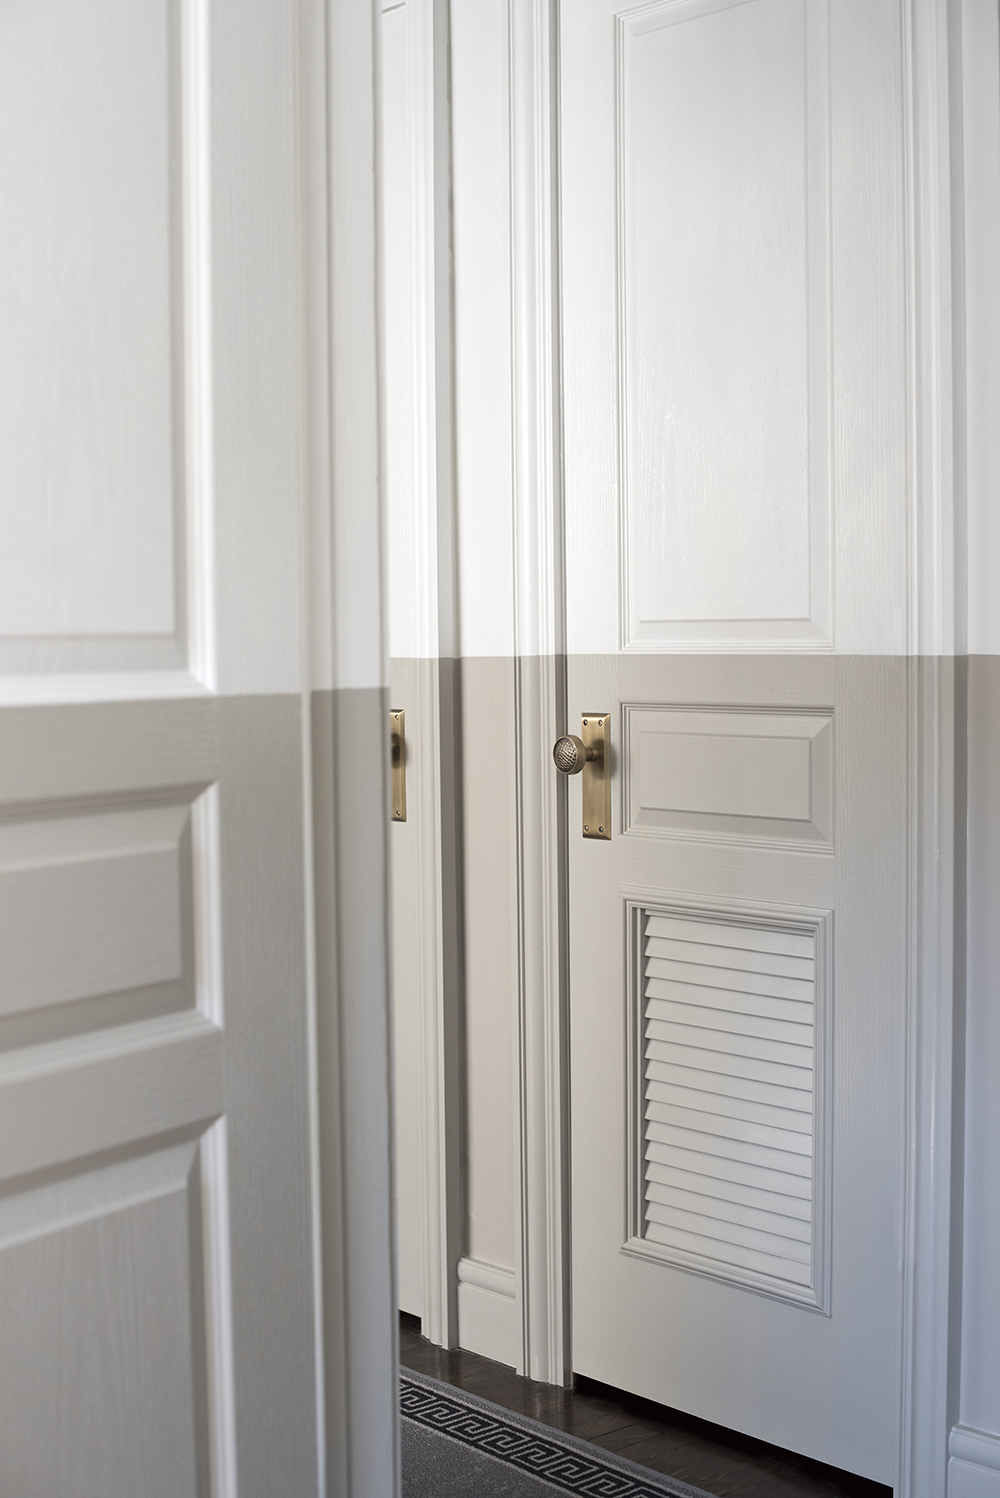 Vented Hallway Doors For Hot Water Heater And Furnace